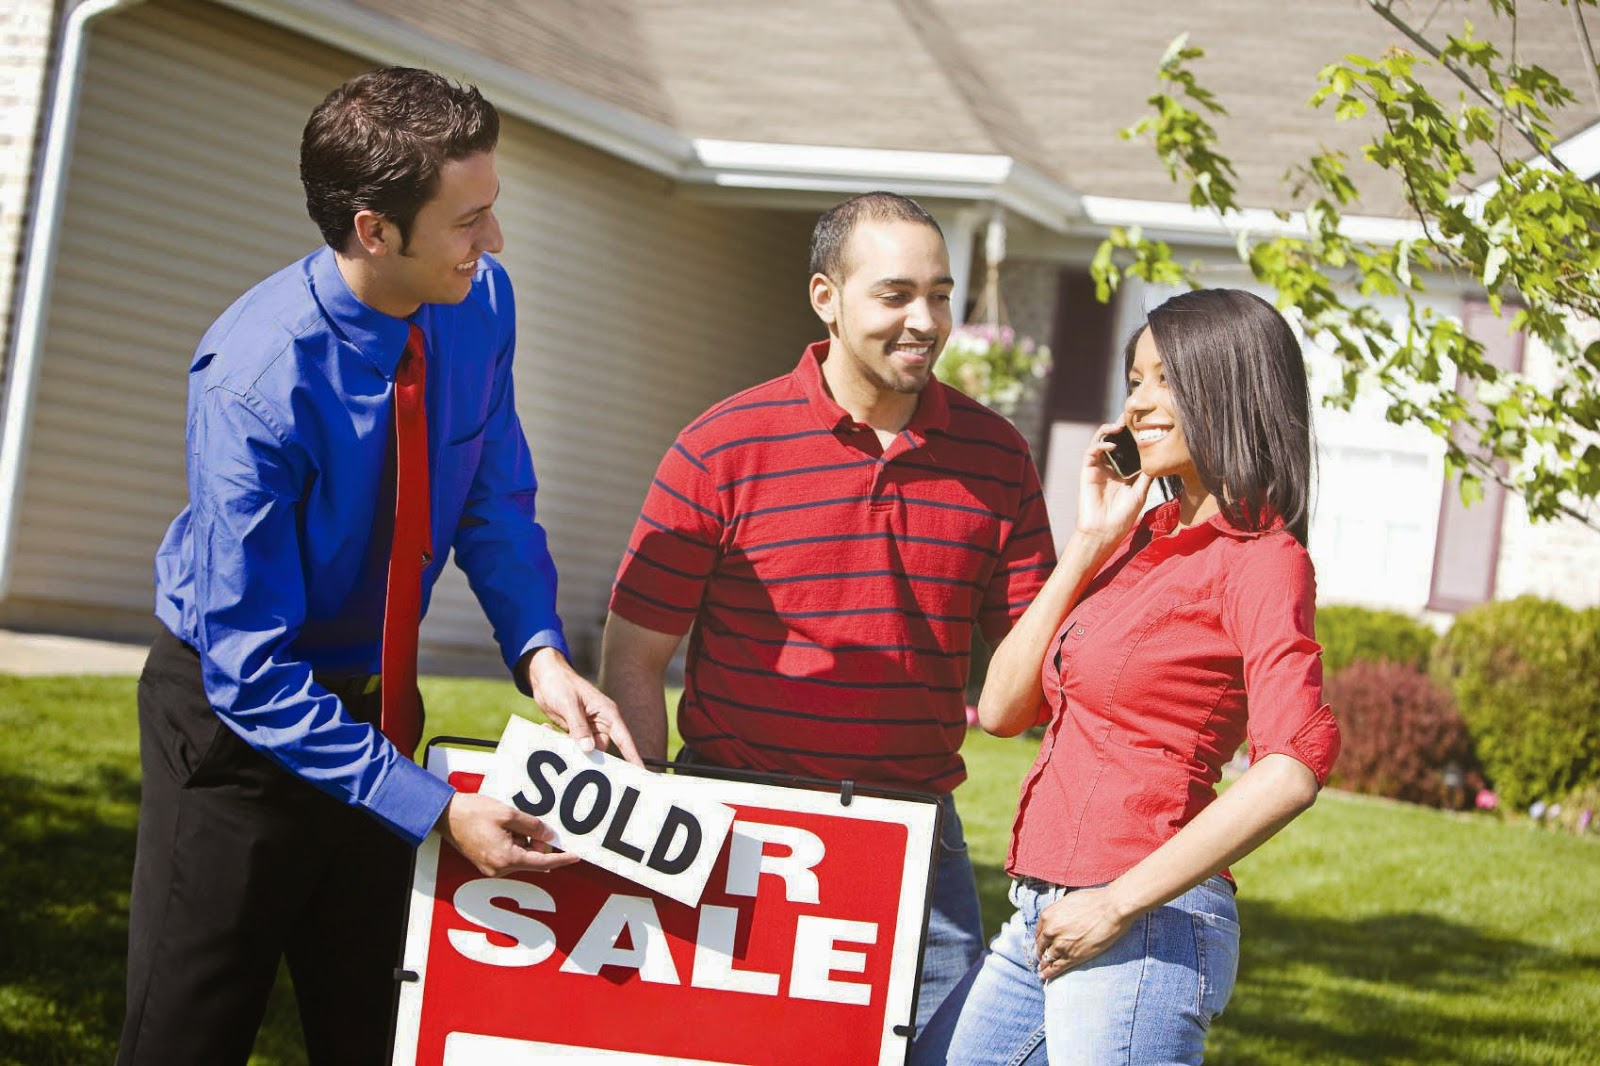 Home Purchase Loans and Finding the Right Real Estate Agent